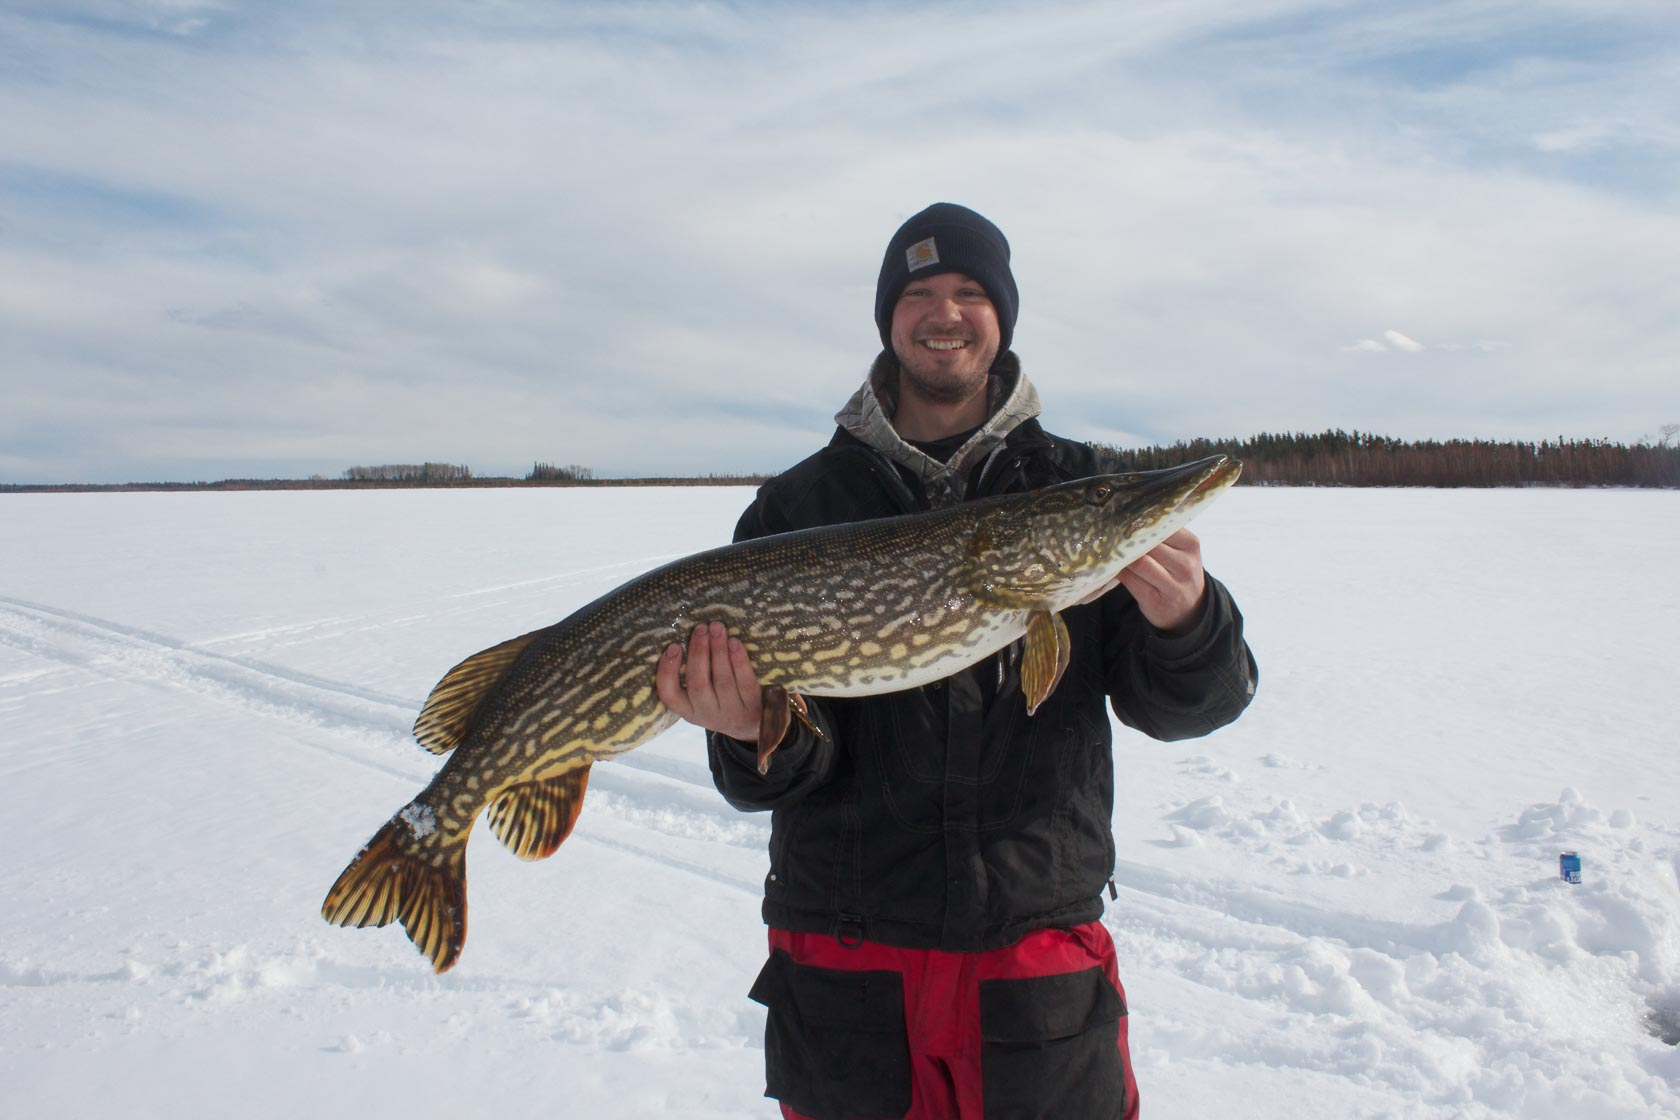 A man wearing a black winter jacket holds a northern pike on a frozen, snow-covered lake.